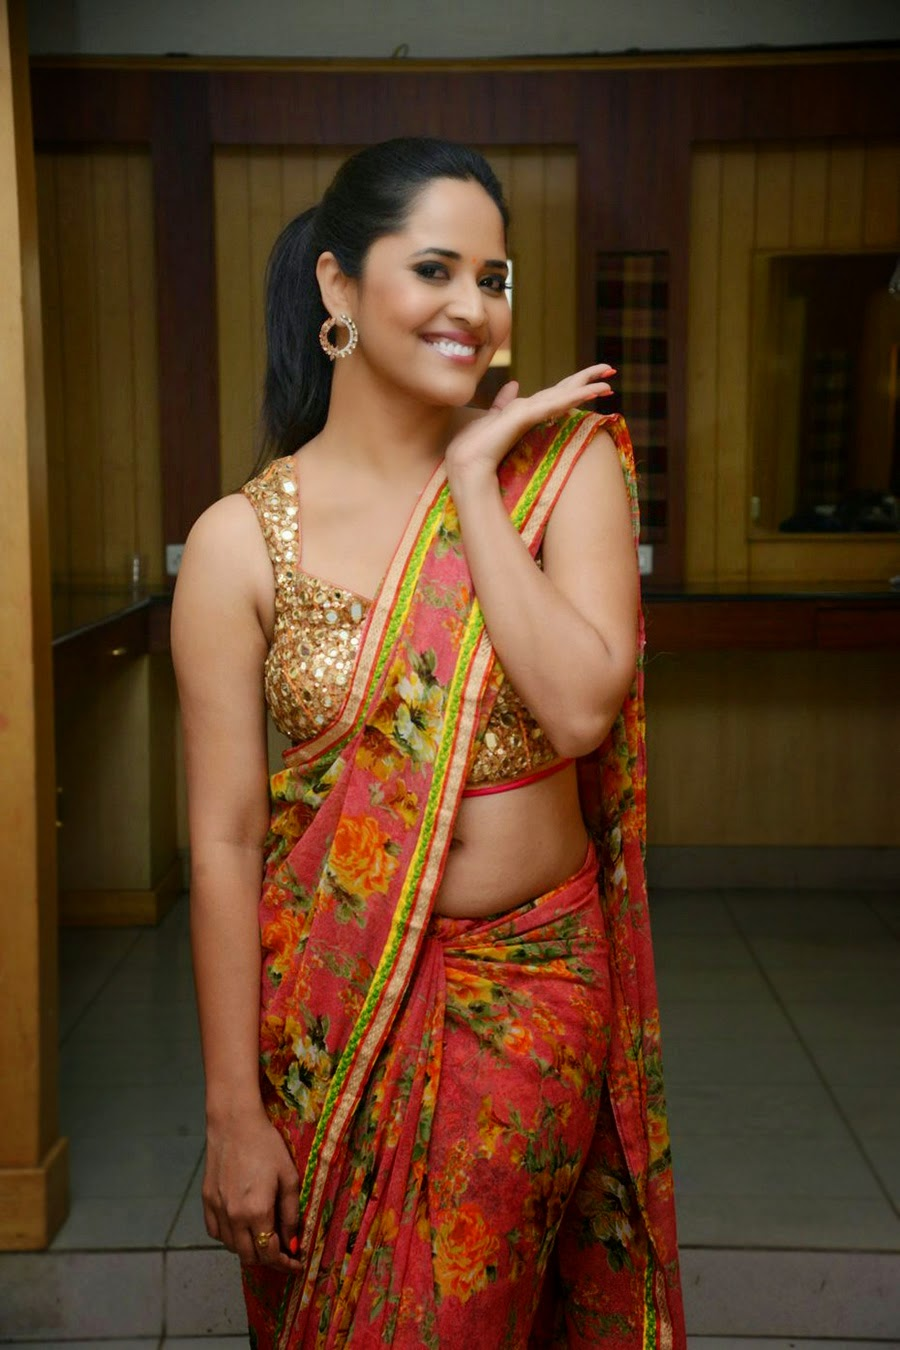 Anchor Anasuya Hot Navel Show Photos - Bollywood Stars